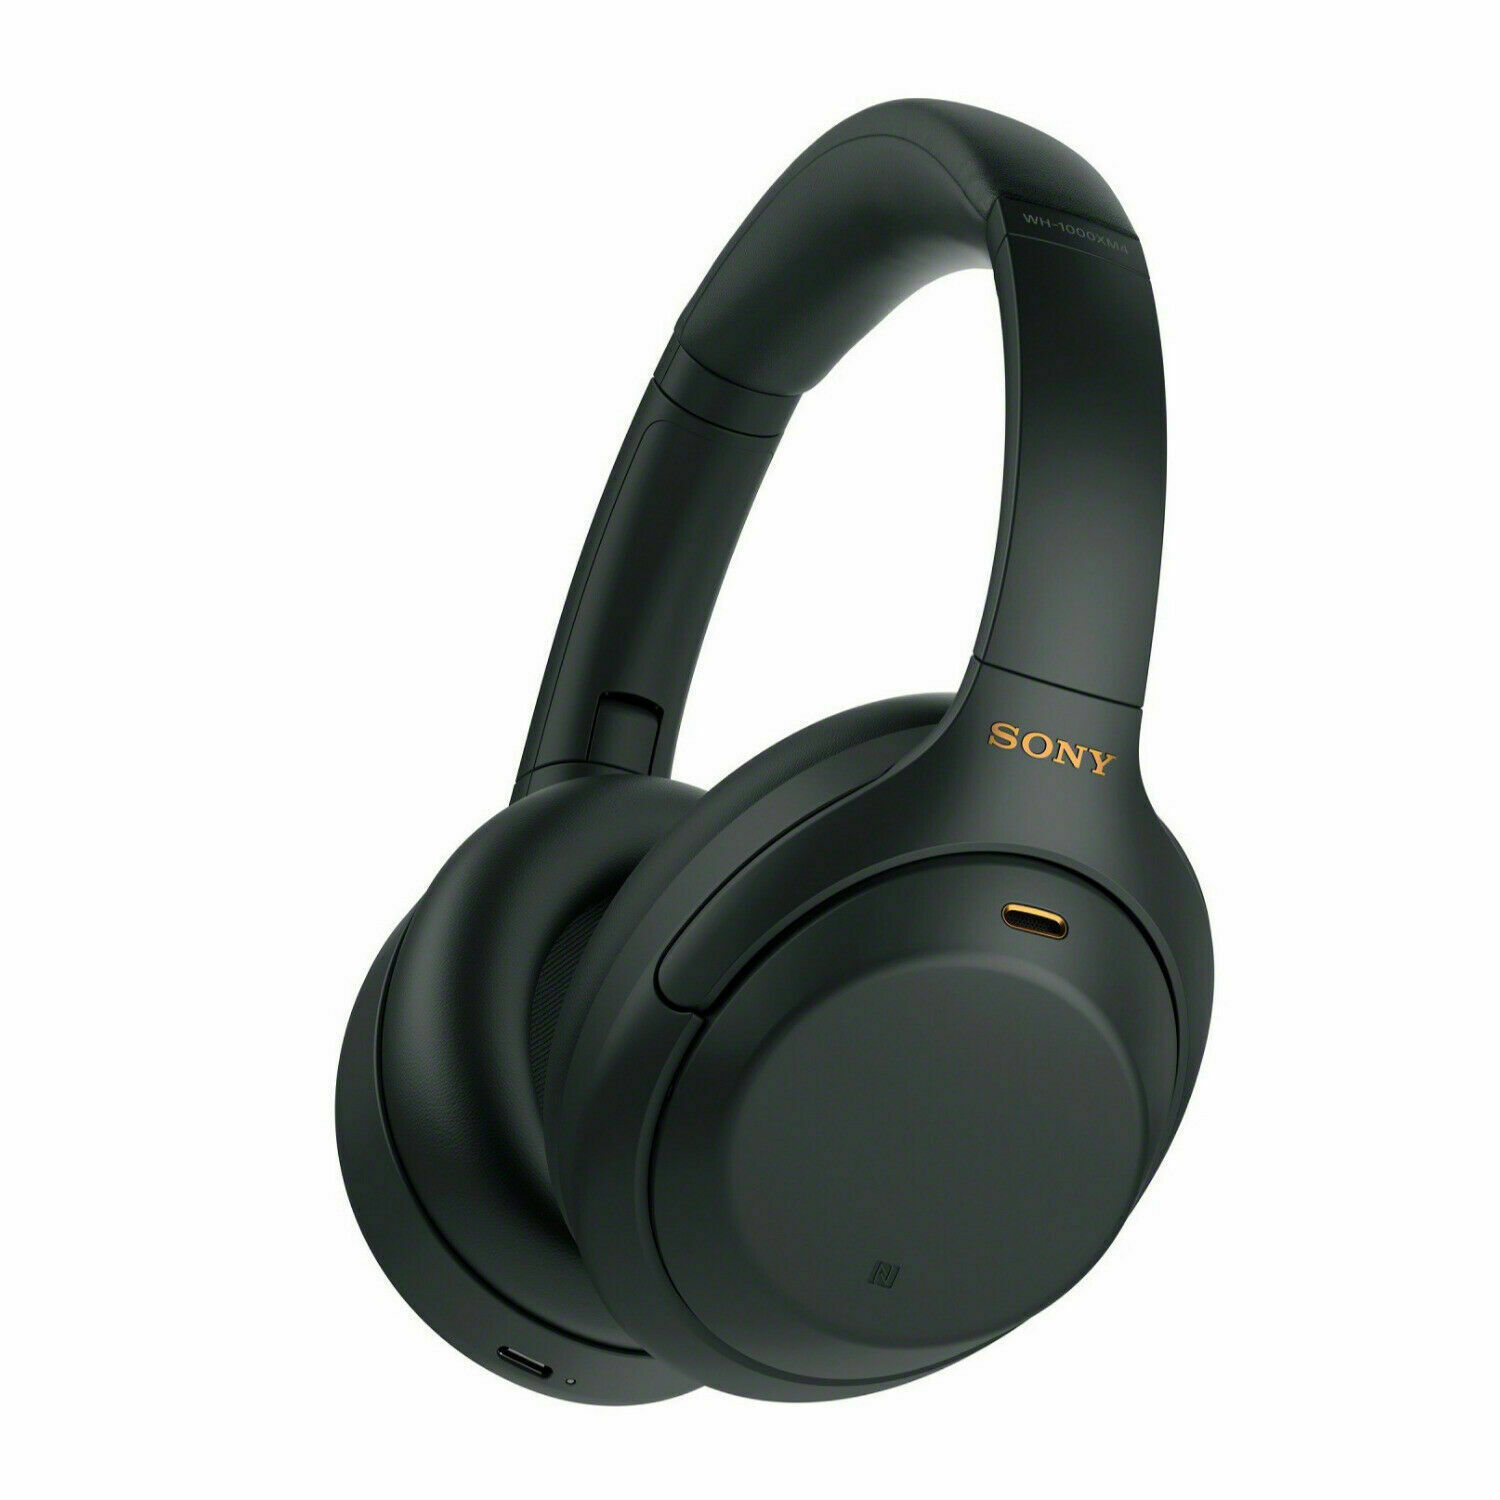 Sony WH-1000XM4 Over the Ear Noise Cancelling Wireless Headphones - Black #54 - $261.85